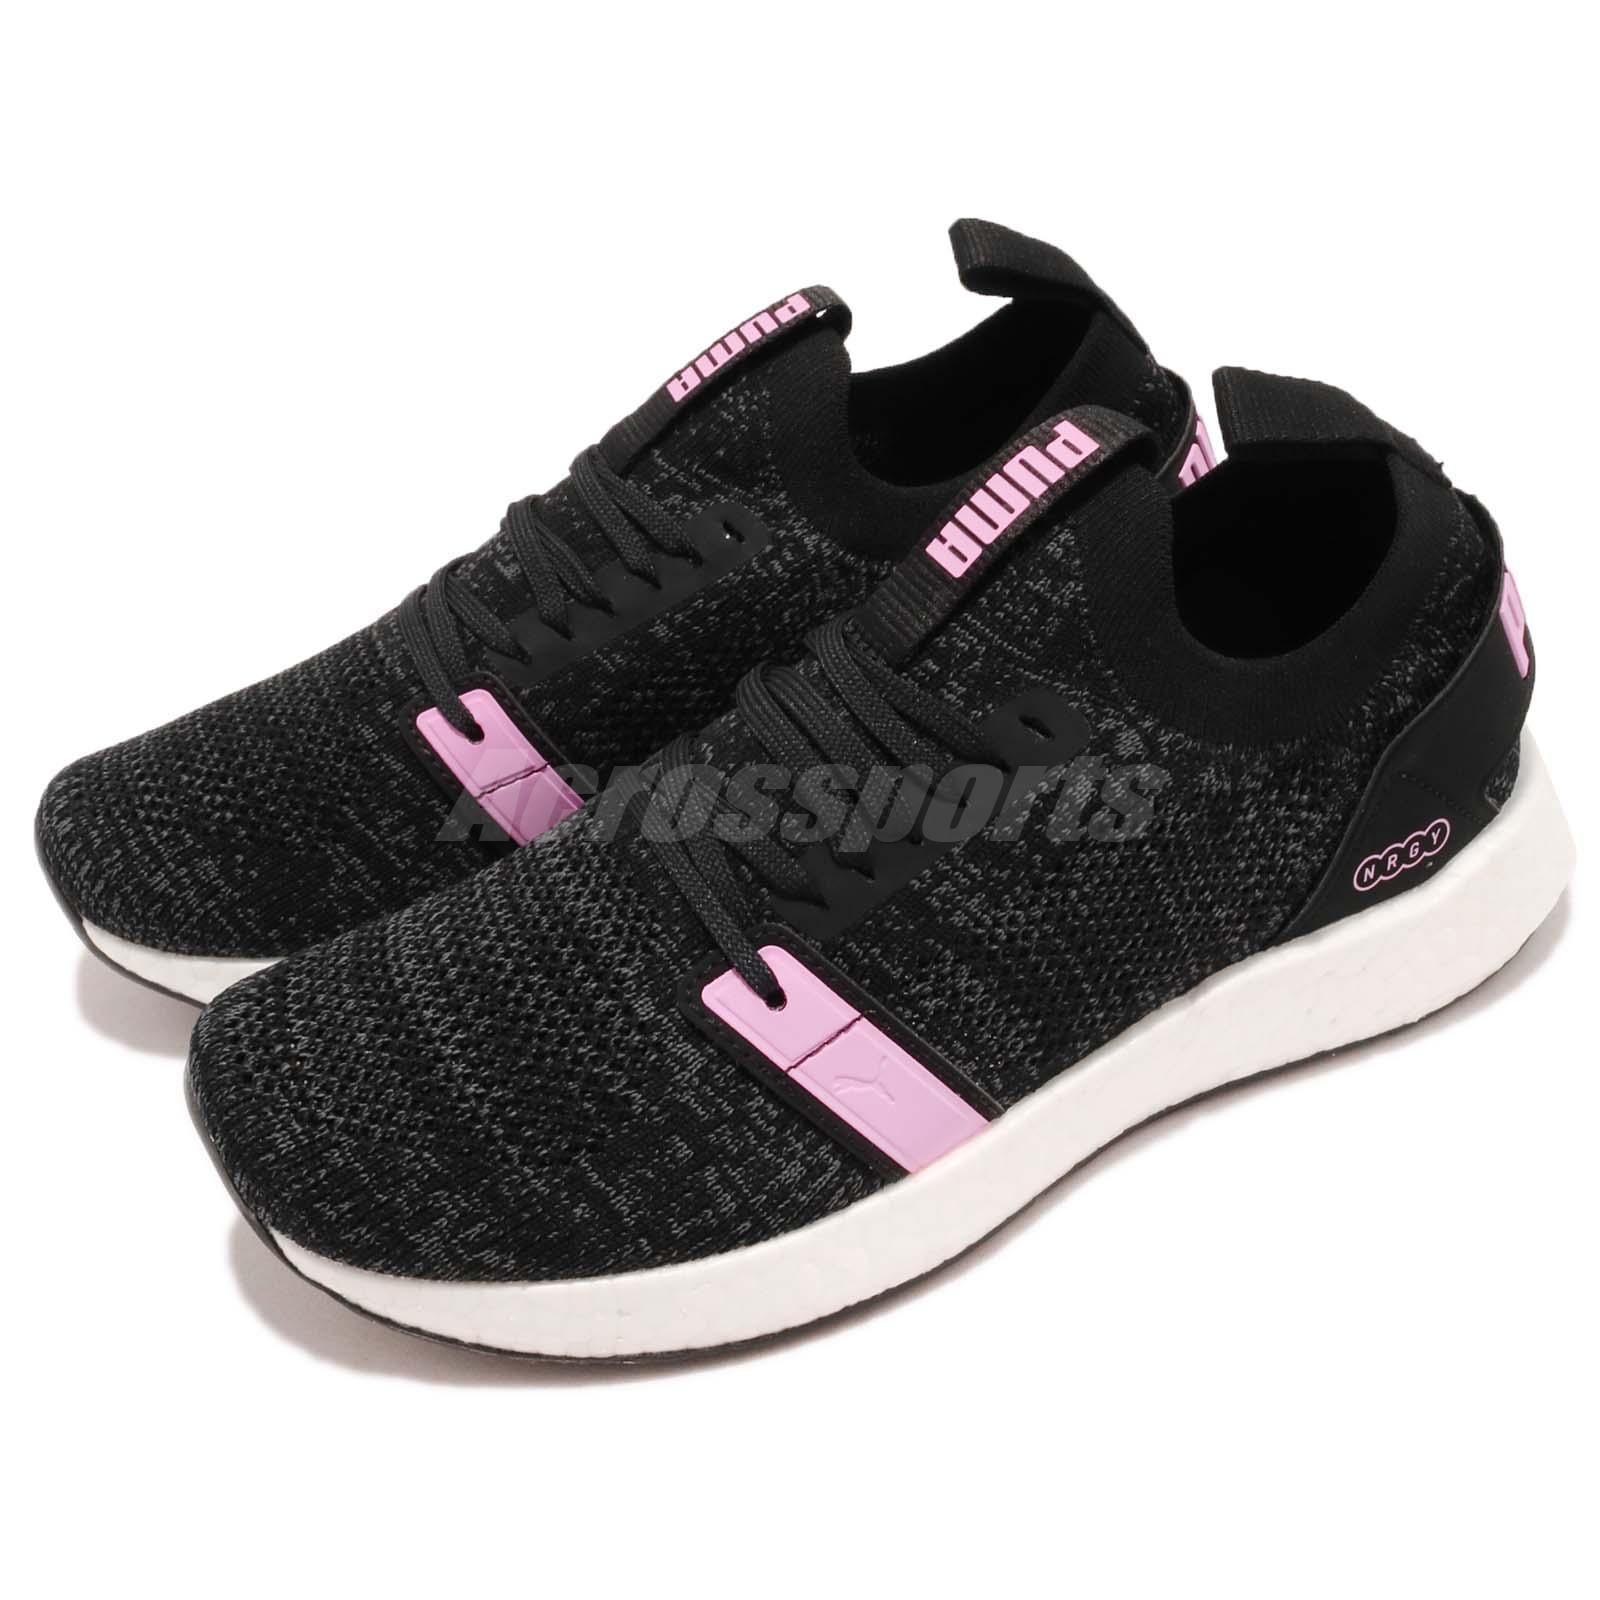 Details about Puma NRGY Neko Engineer Knit Wns Black Orchid Women Running Shoes 191094 01